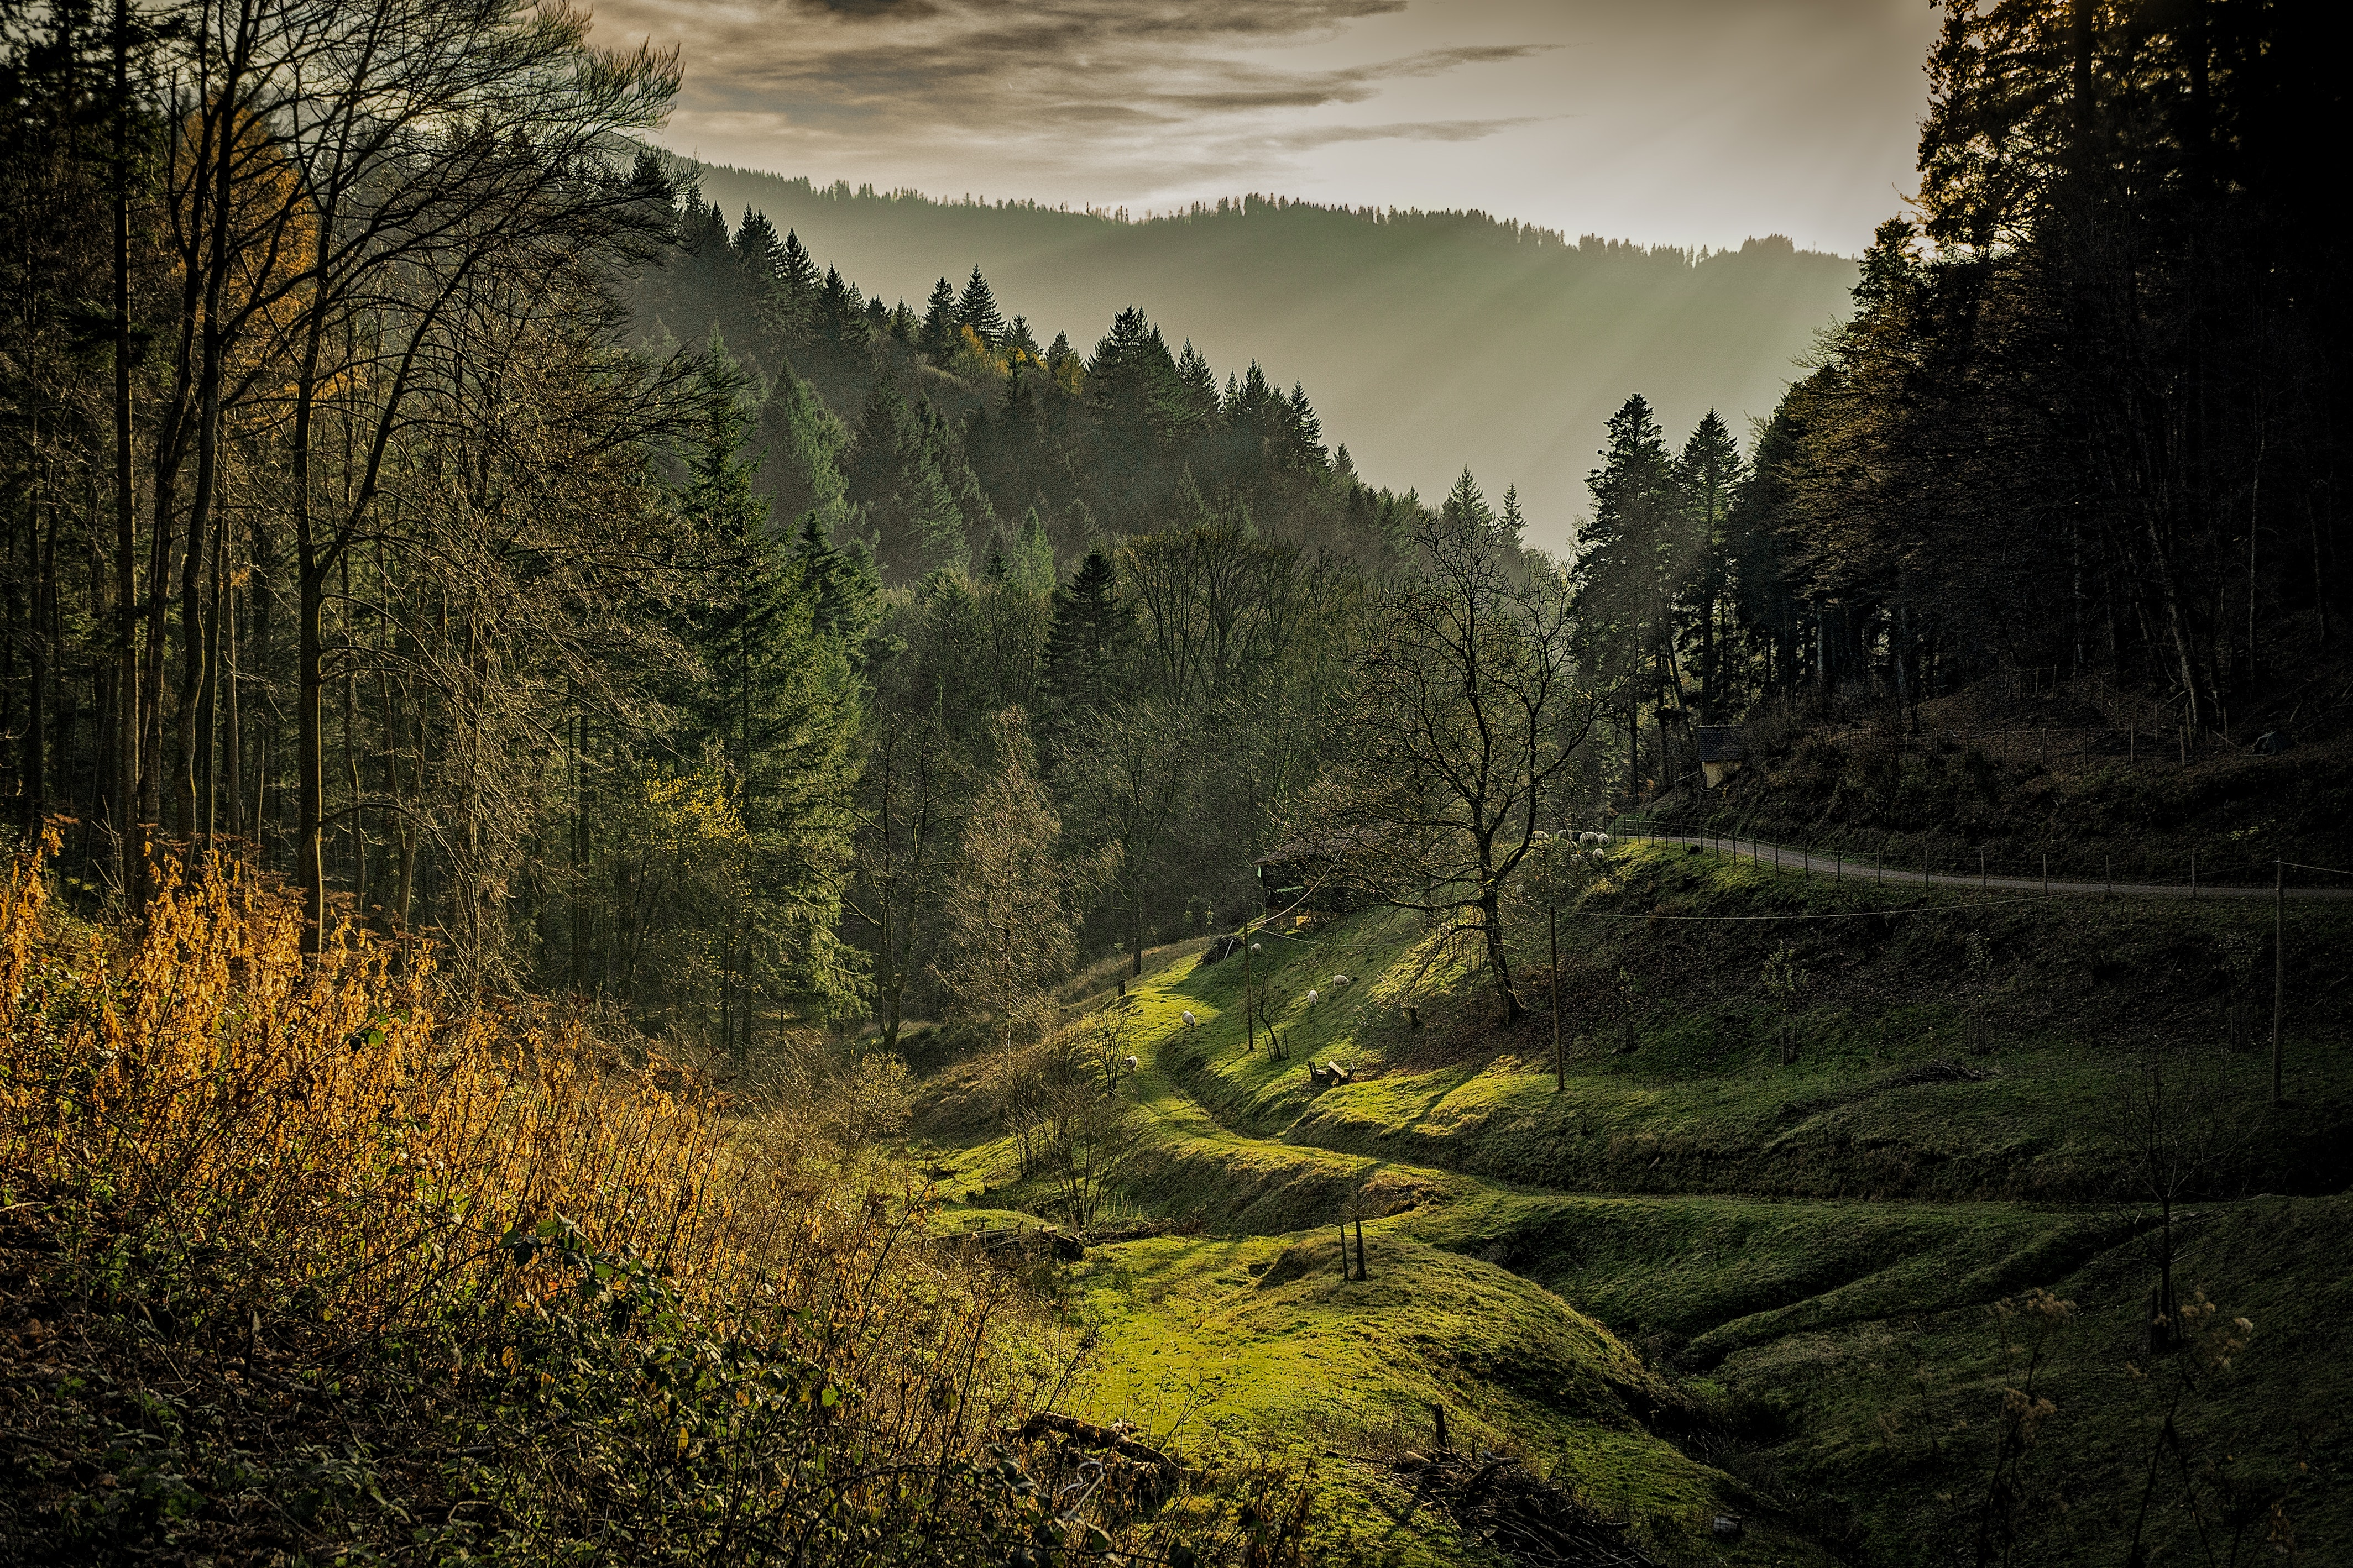 Green Forest Taken during Sunrise, Scenic, Outdoors, Nature, Sun, HQ Photo